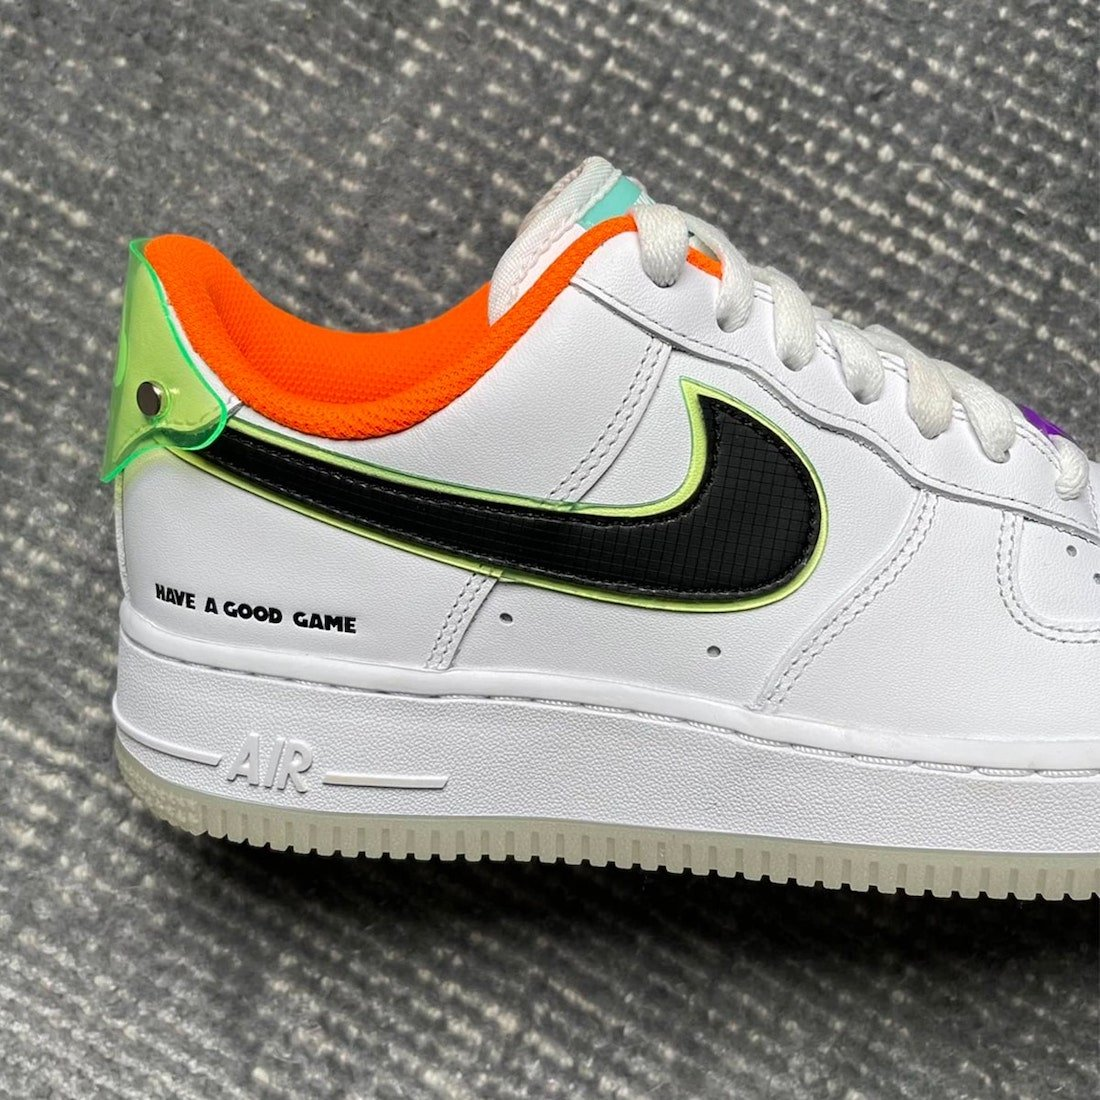 nike air force 1 low have a good game 2021 do2333 101 release date info 6